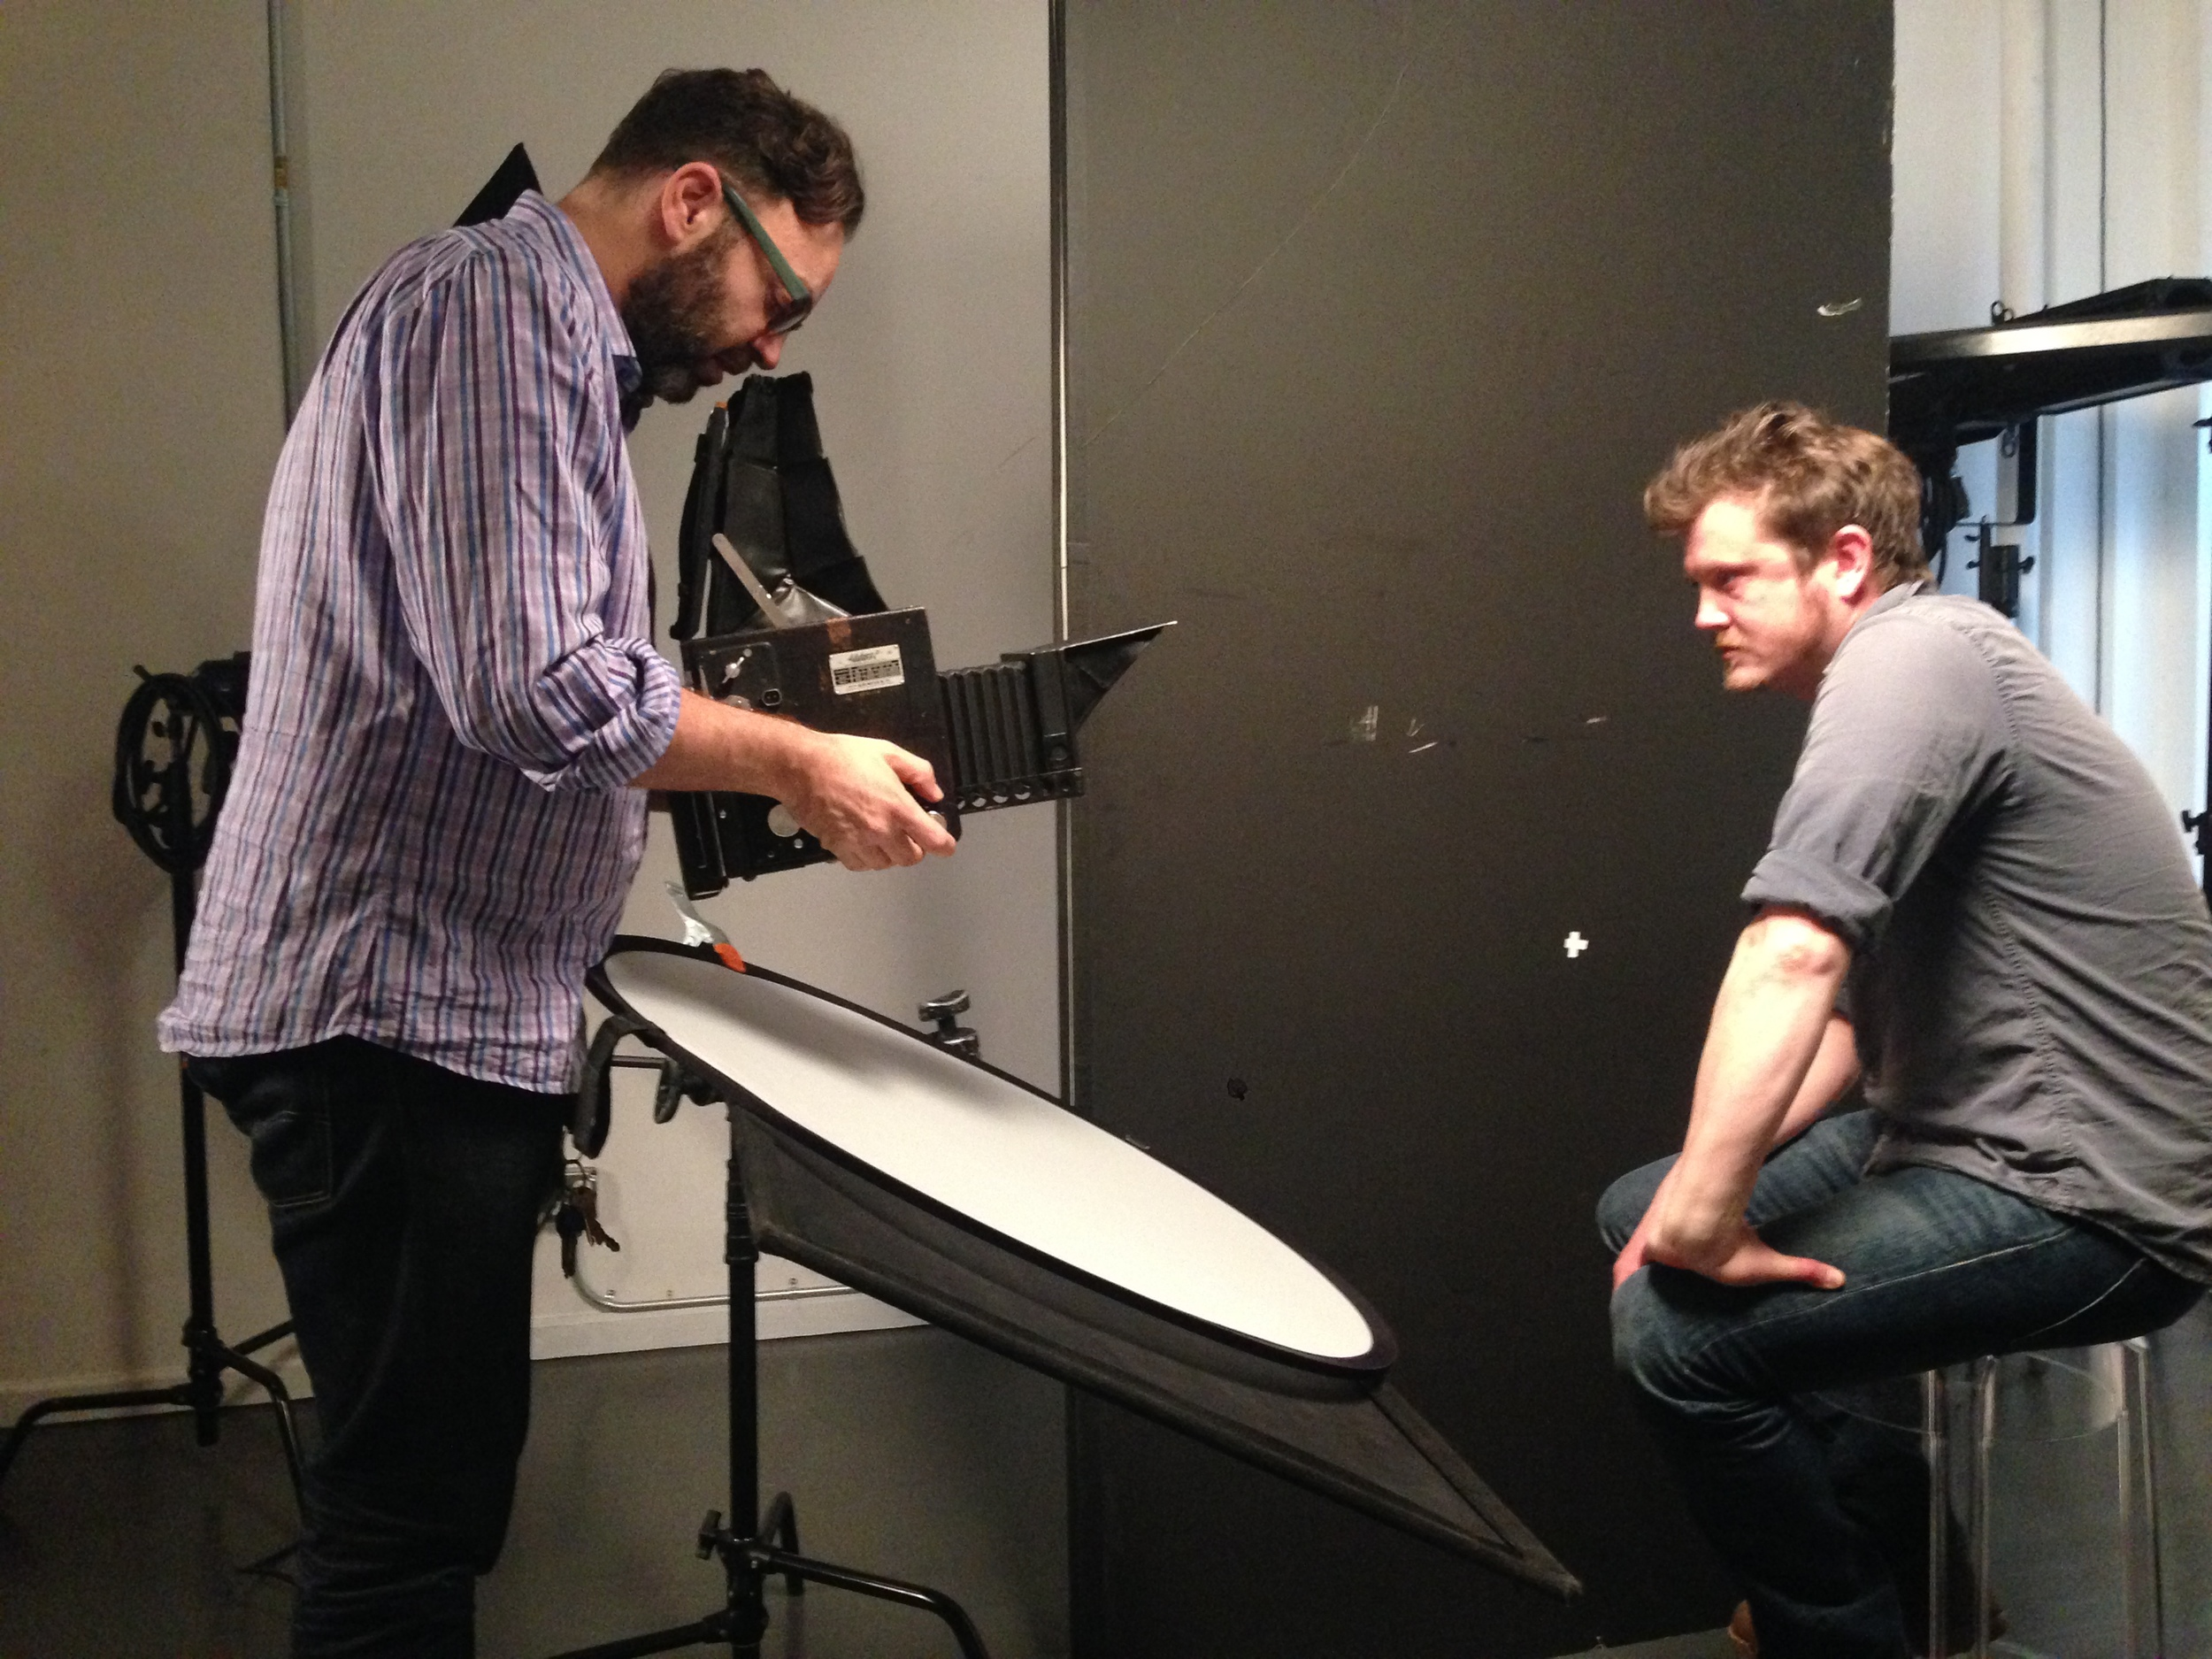 Mark and Graflex with House of Card's show runner Beau Willimon